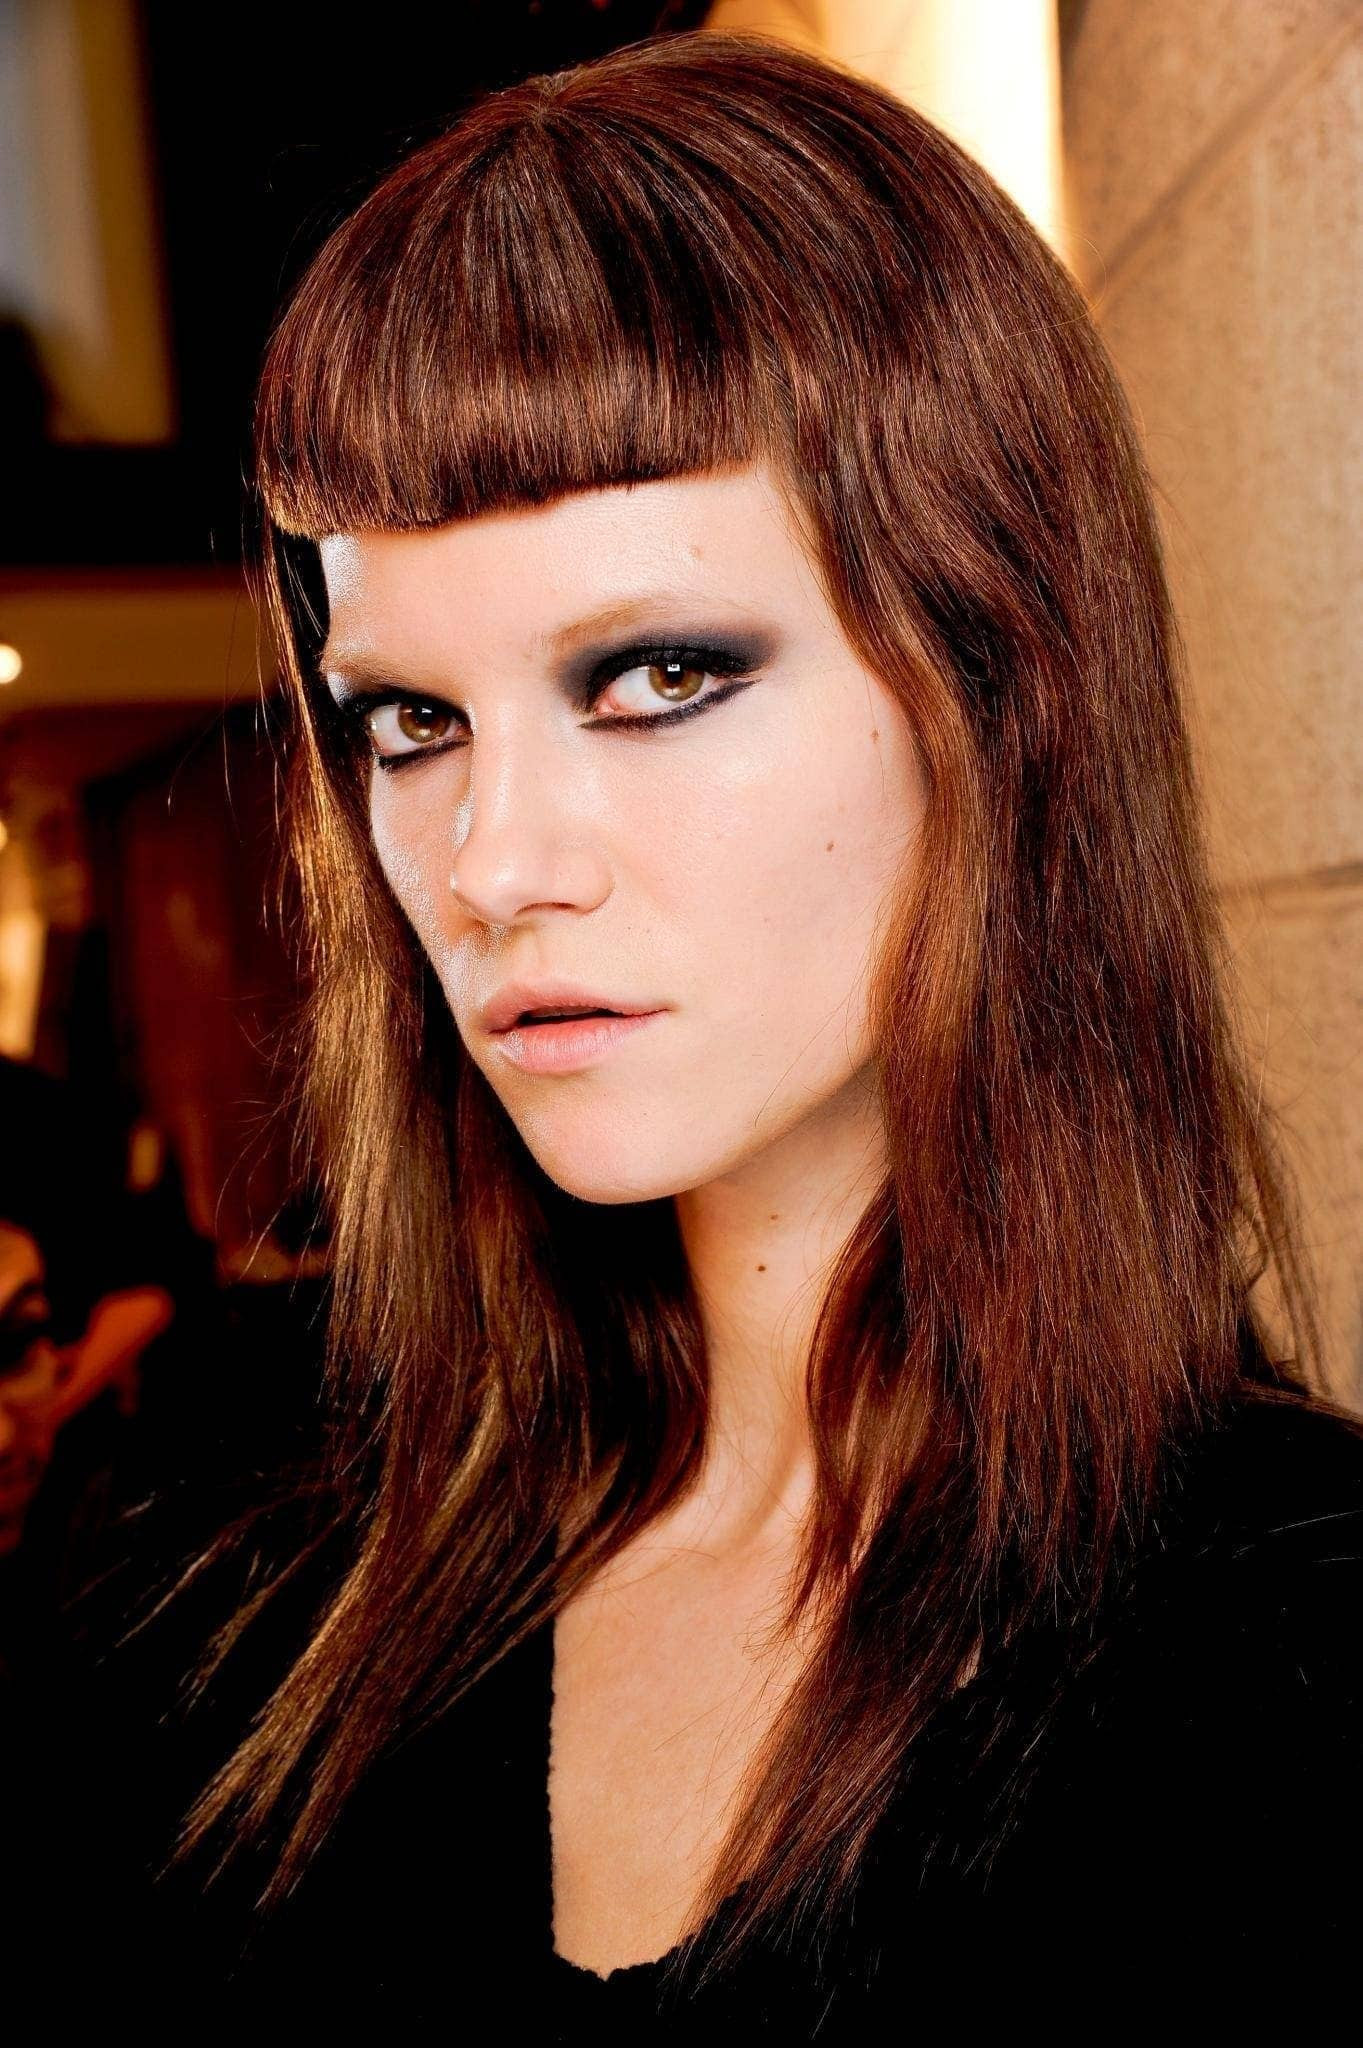 Best ideas about Medium Straight Haircuts . Save or Pin 7 Medium Length Straight Hairstyles You'll Want to Try Now Now.